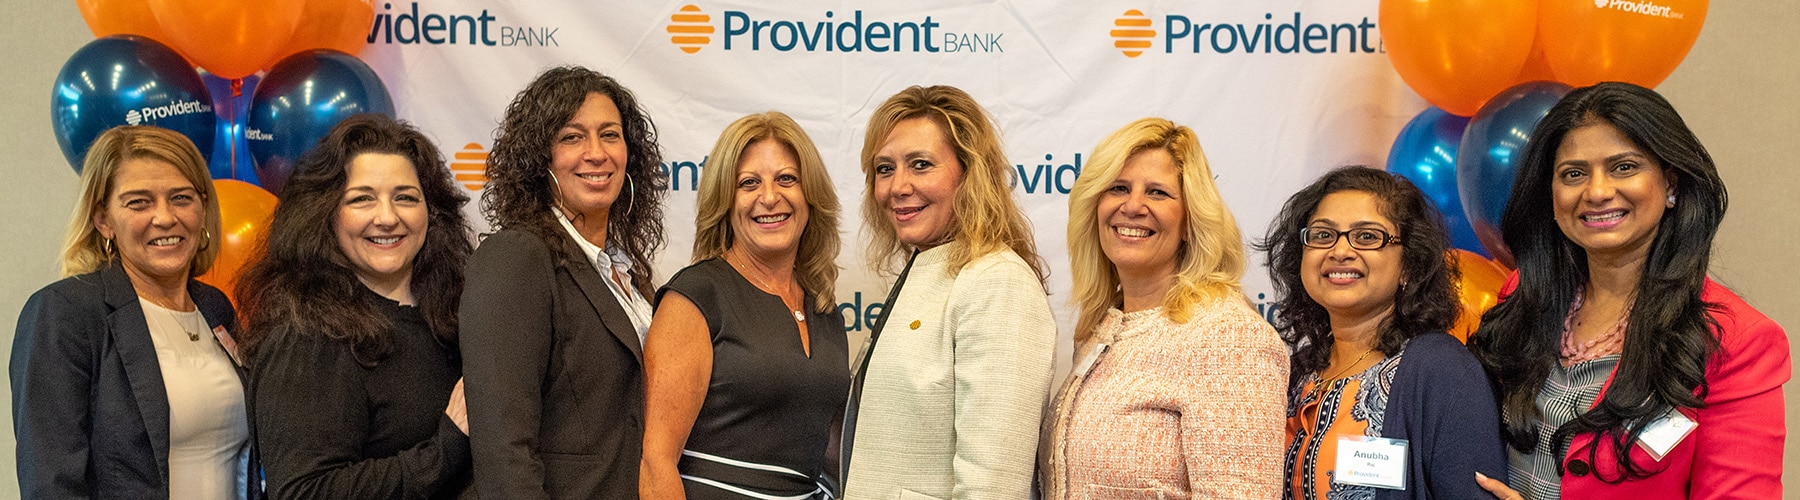 Careers at Provident Bank